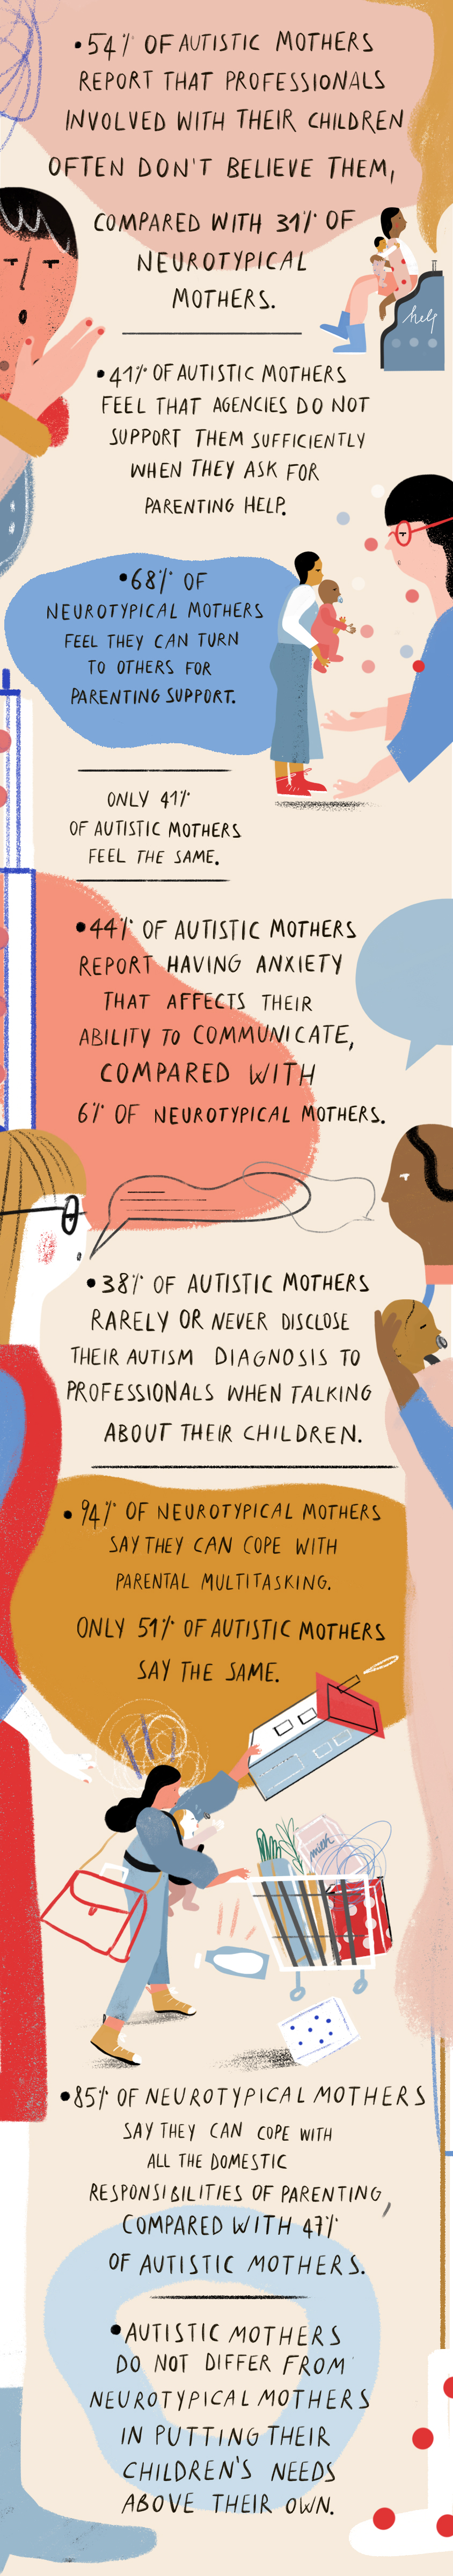 Illustration shows stresses on new mothers, especially mothers with autism